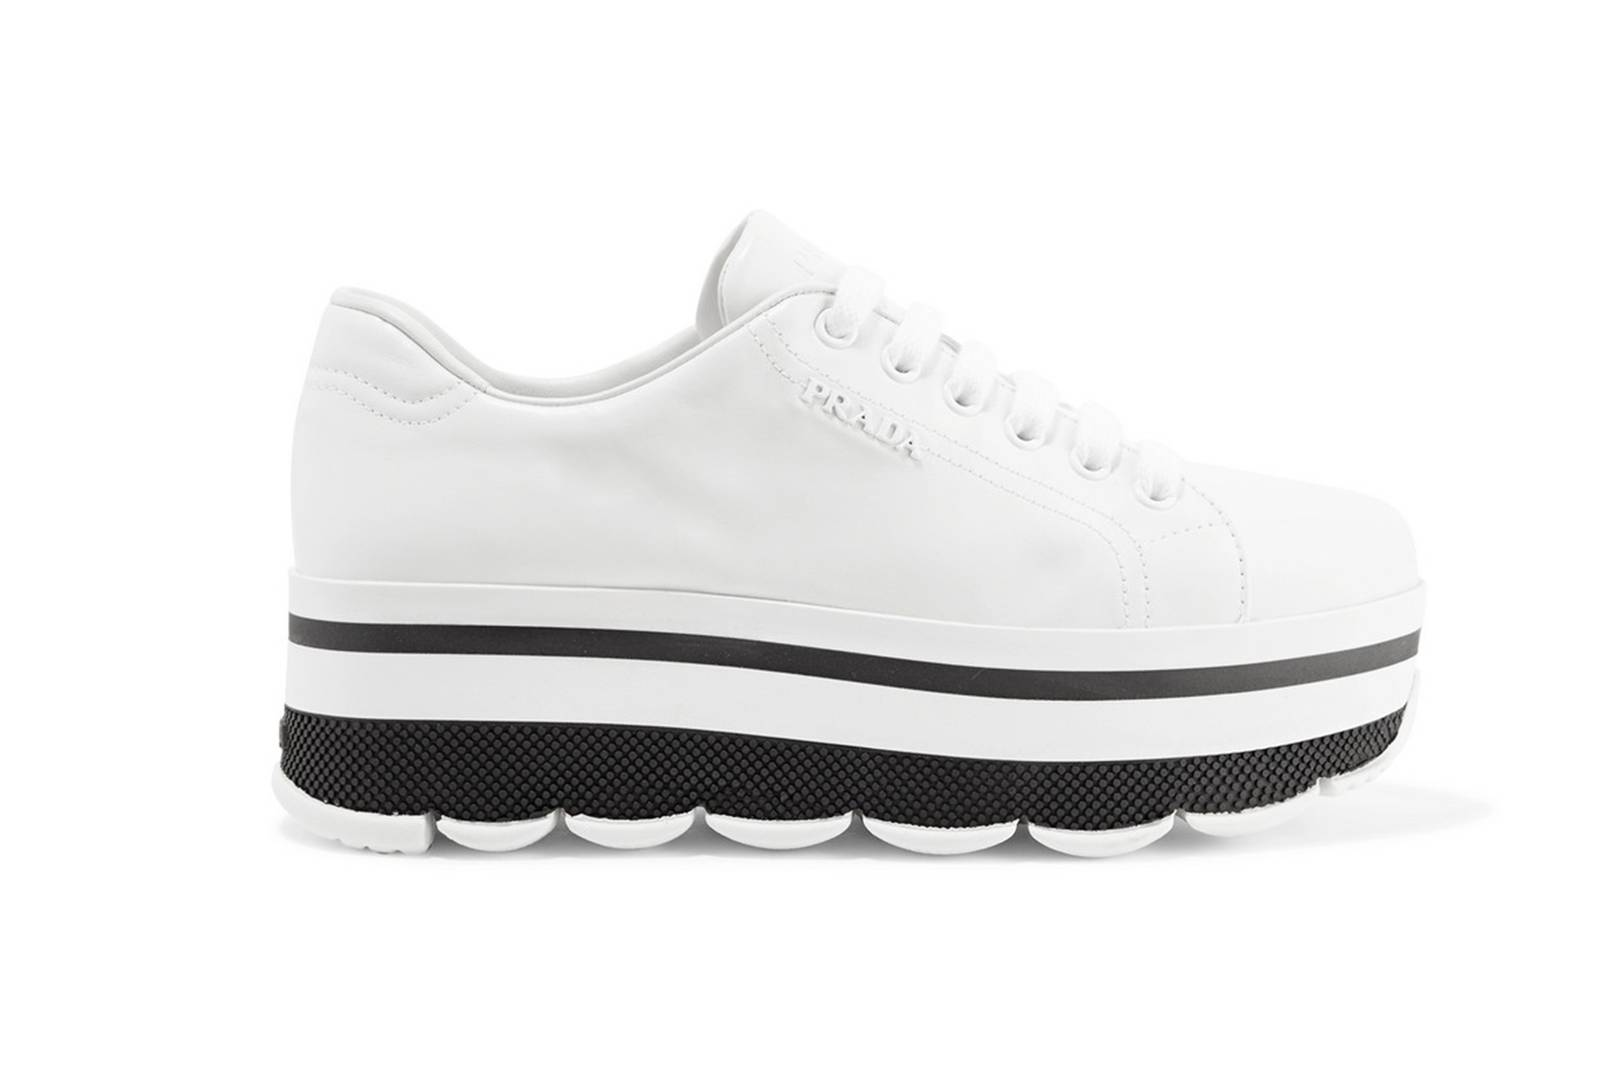 Zara Trainers Everyone Is Saying The Same Thing About This New Pair